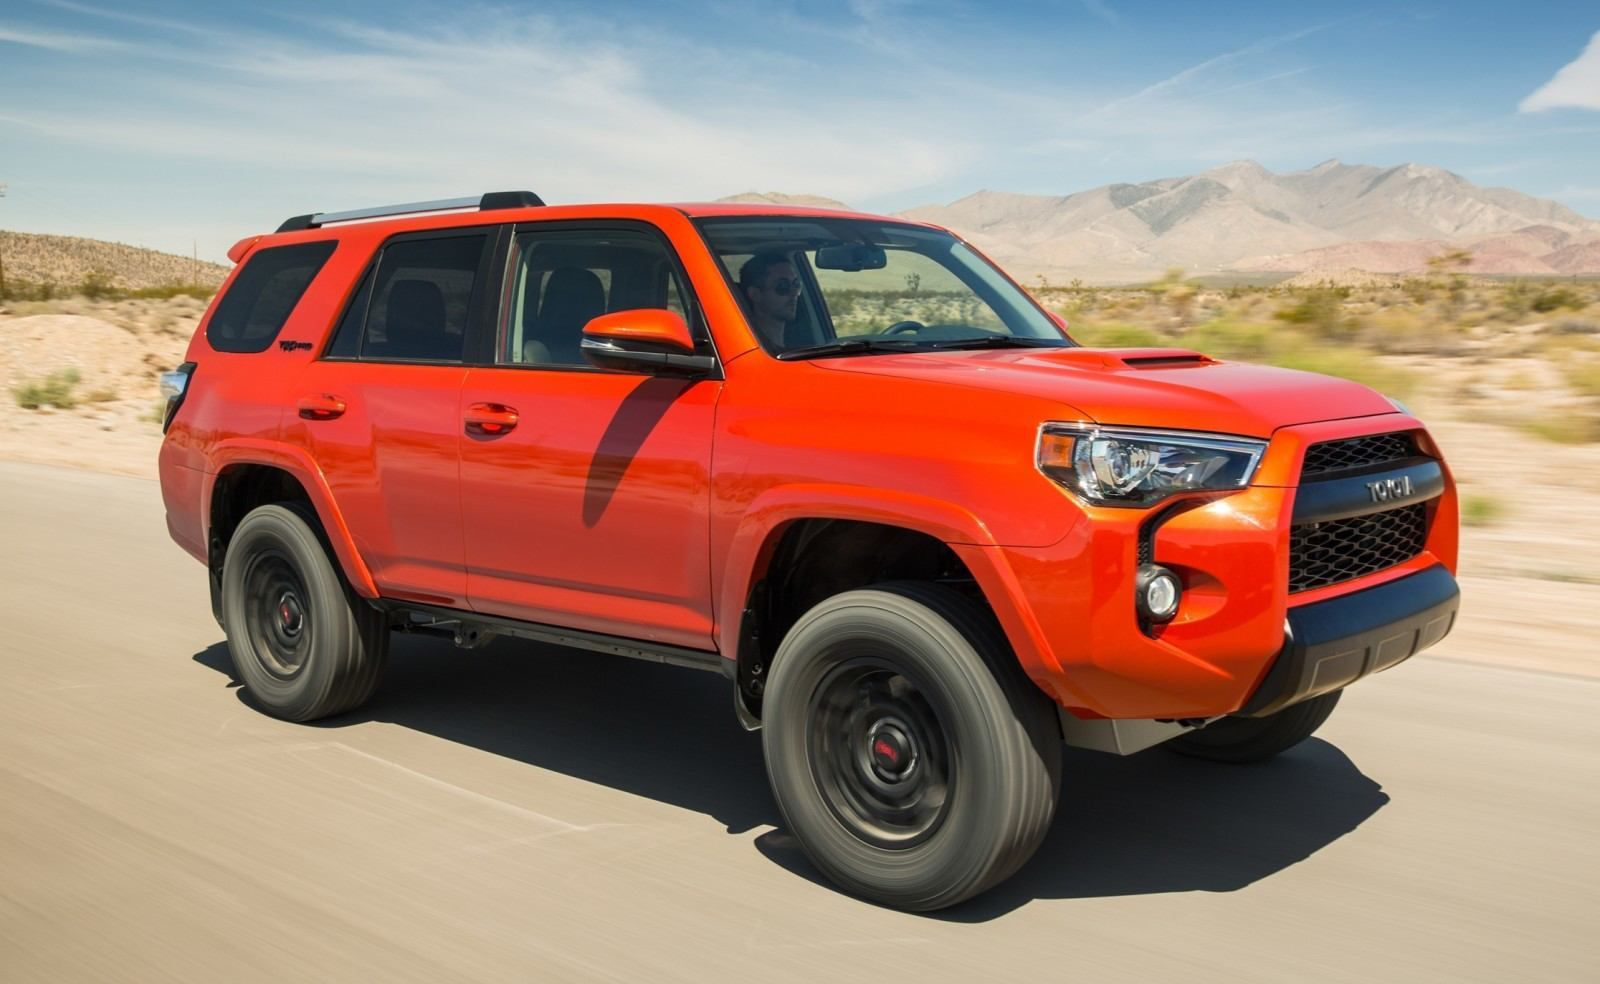 Toyota 4Runner Lifted >> Incredible SUV Toyota 4Runner 2018: 25 images in HD